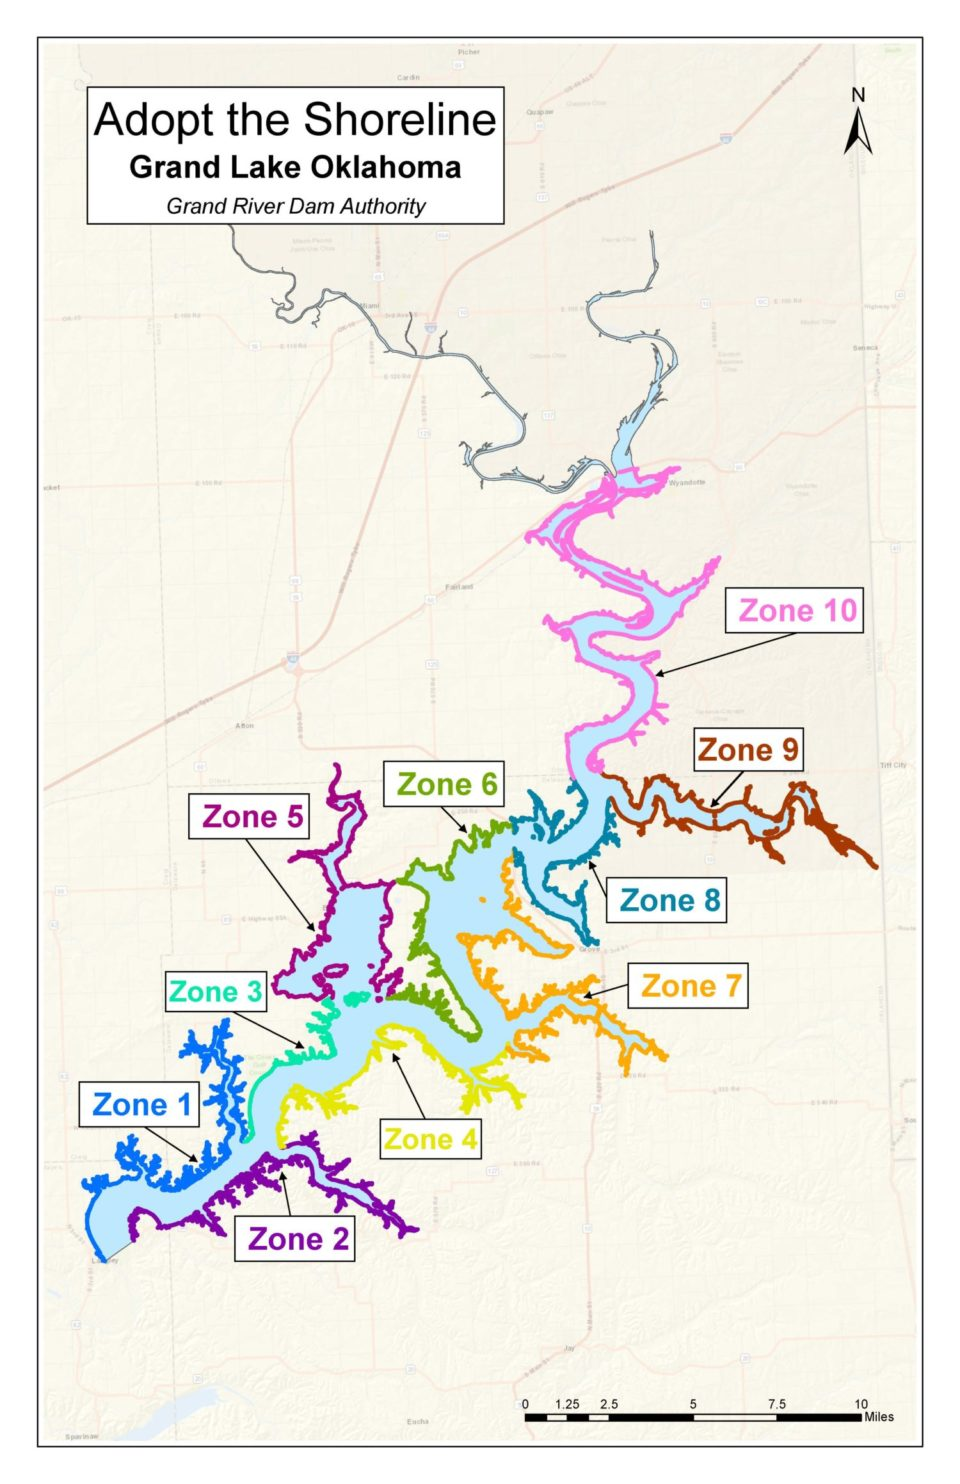 Grand Lake Adopt the Shoreline zone map